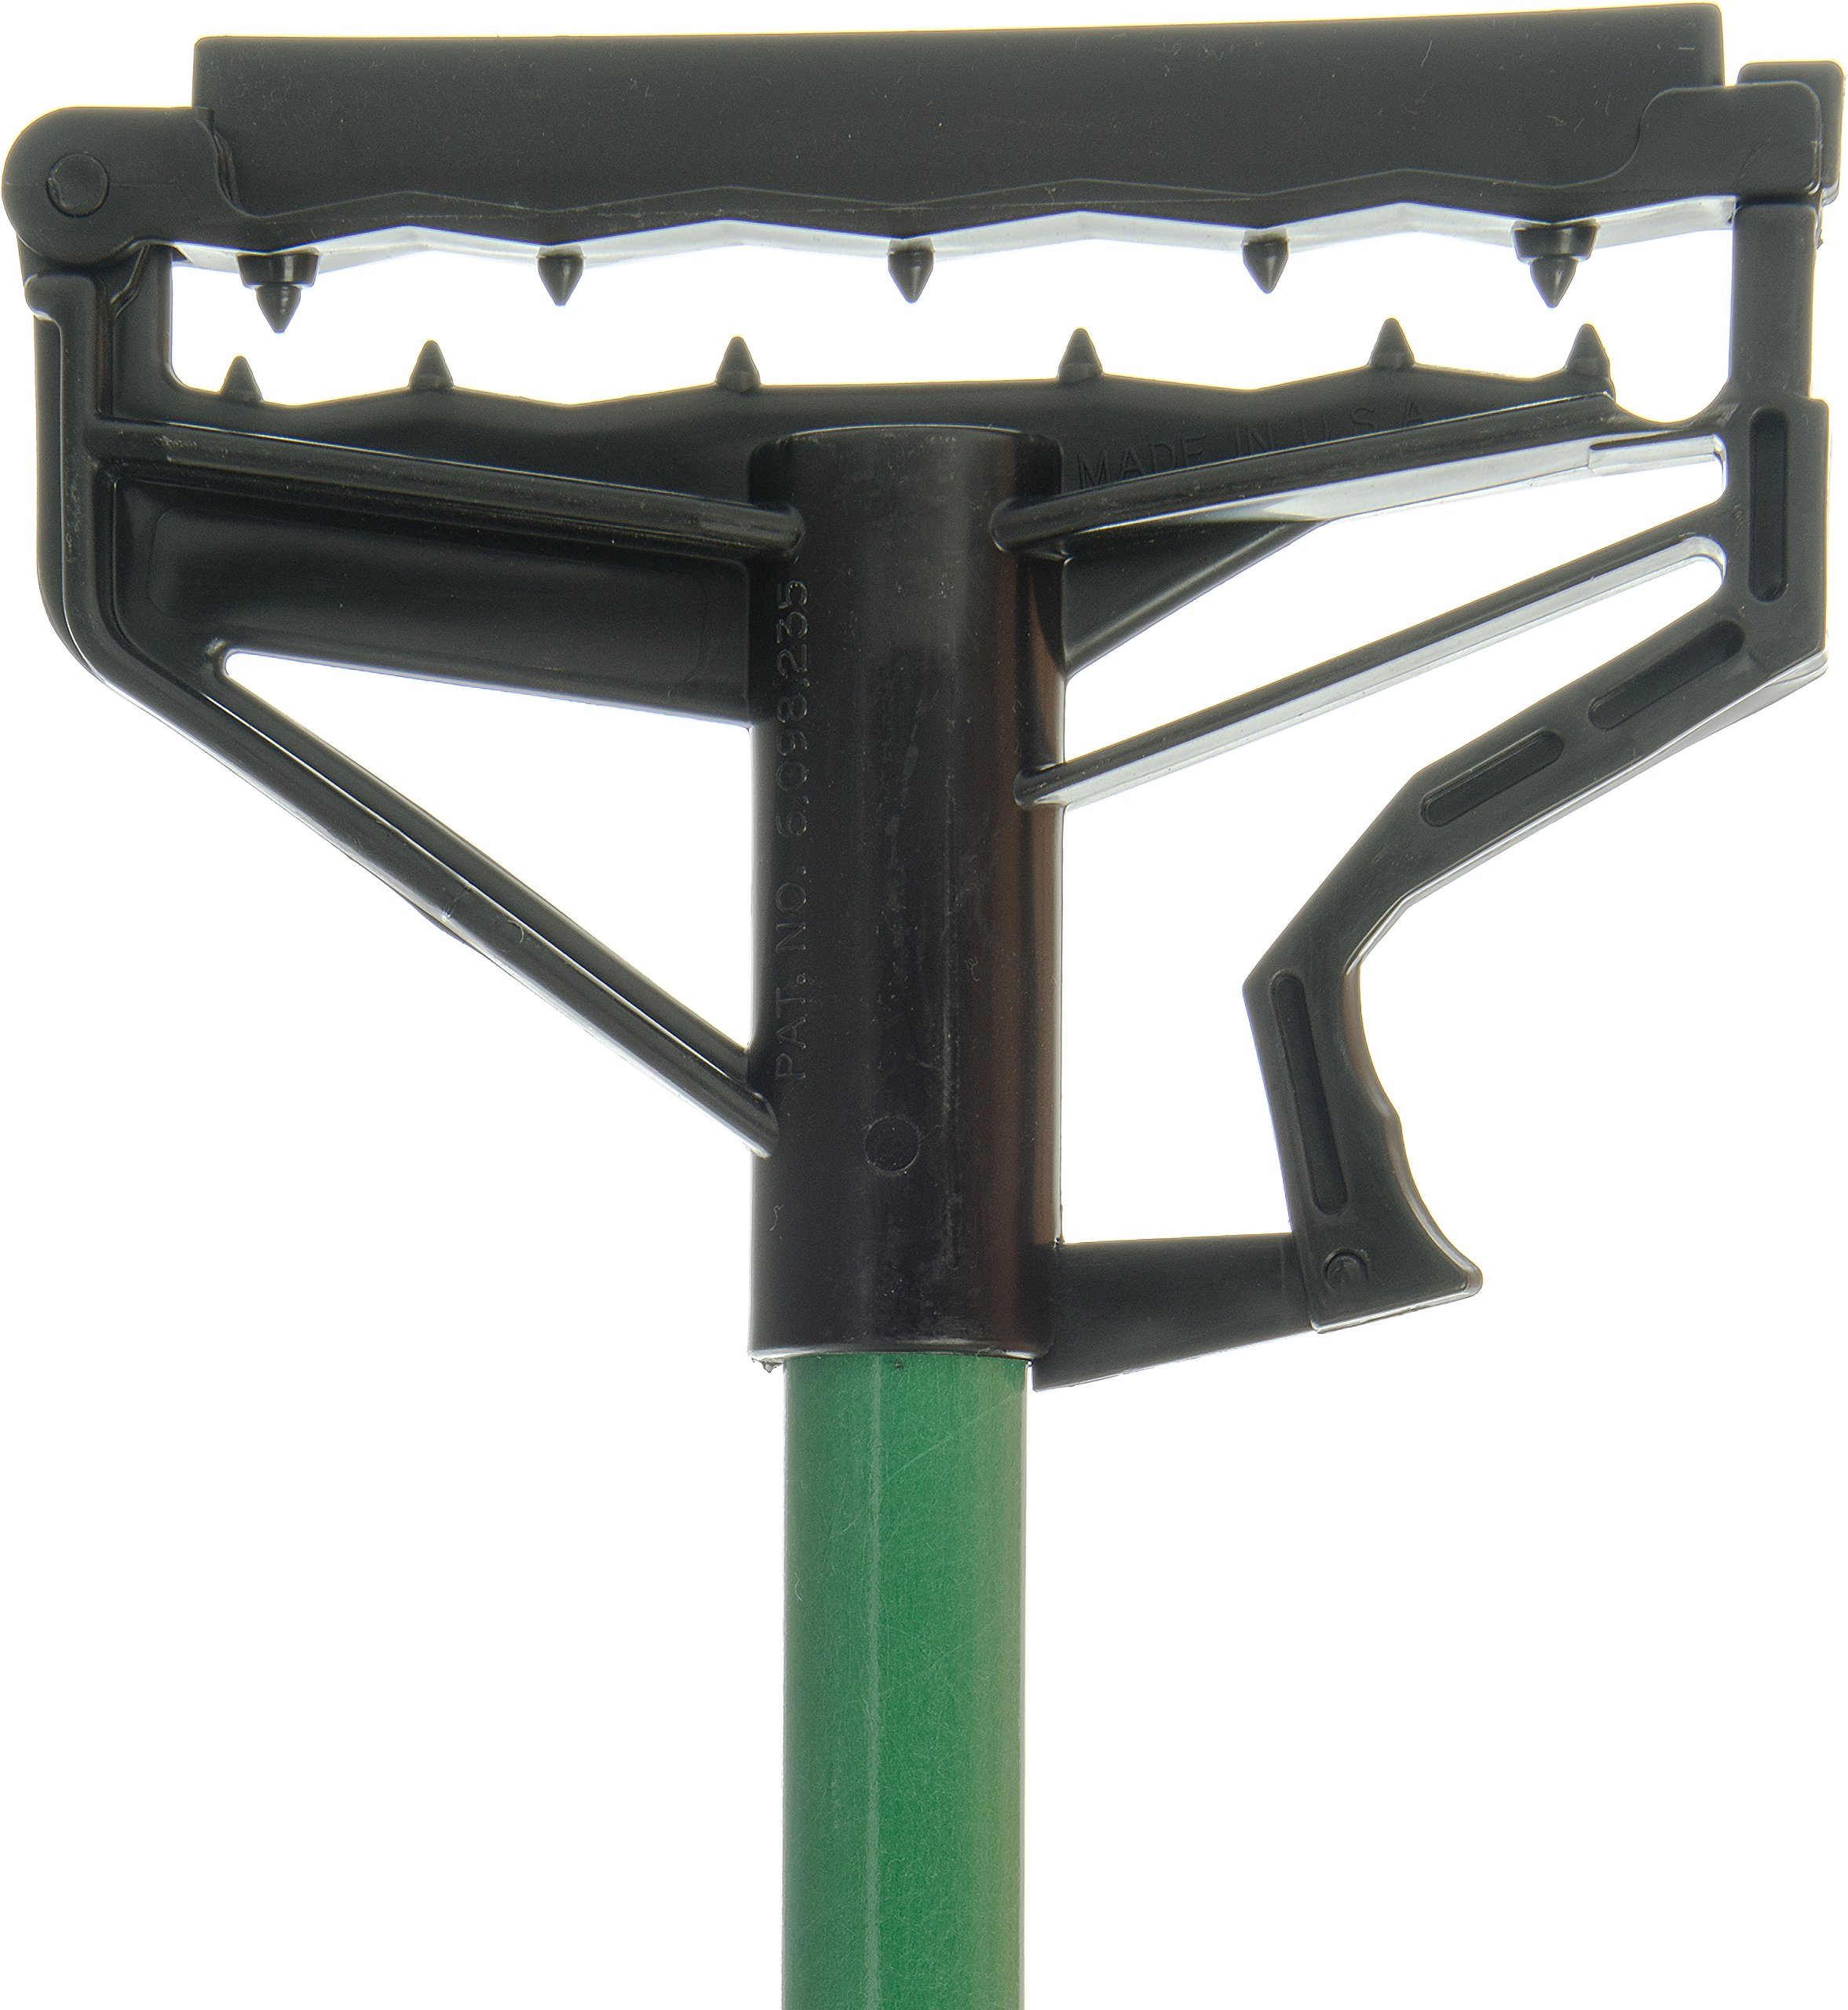 Carlisle 4166409 Commercial Side-Gate Fiberglass Wet Mop Handle, 60'', Green (Pack of 12) by Carlisle (Image #2)